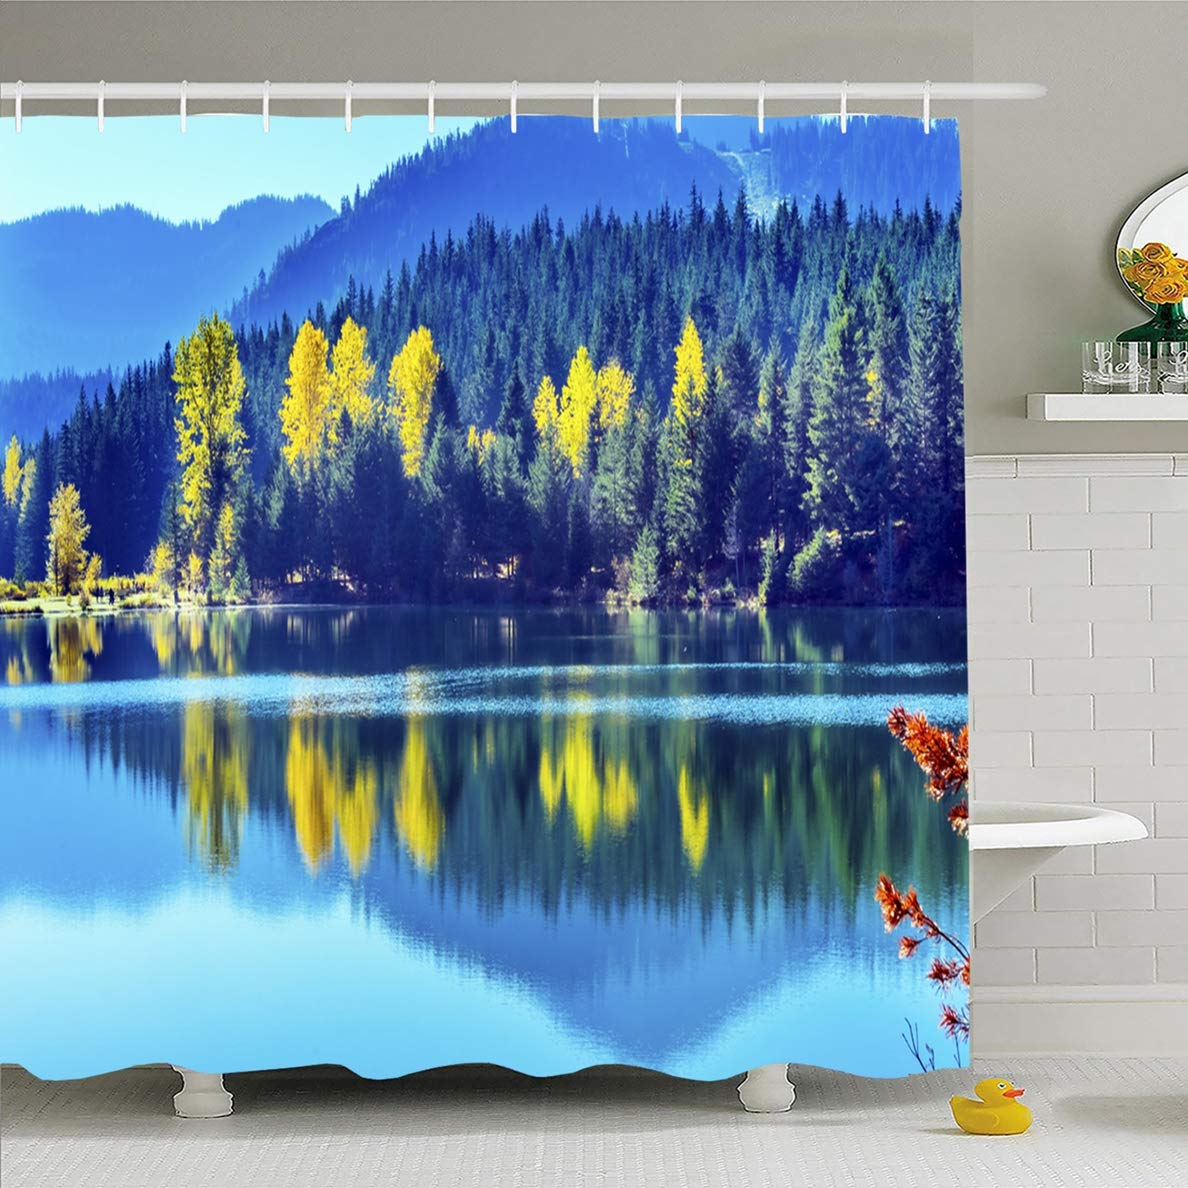 Ahawoso Shower Curtain 60 x 72 Inches Blue Water Yellow Trees Reflection Island Nature Autumn Parks Green Calm Clear Ecology Design Orange Waterproof Polyester Fabric Bathroom Set with Hooks